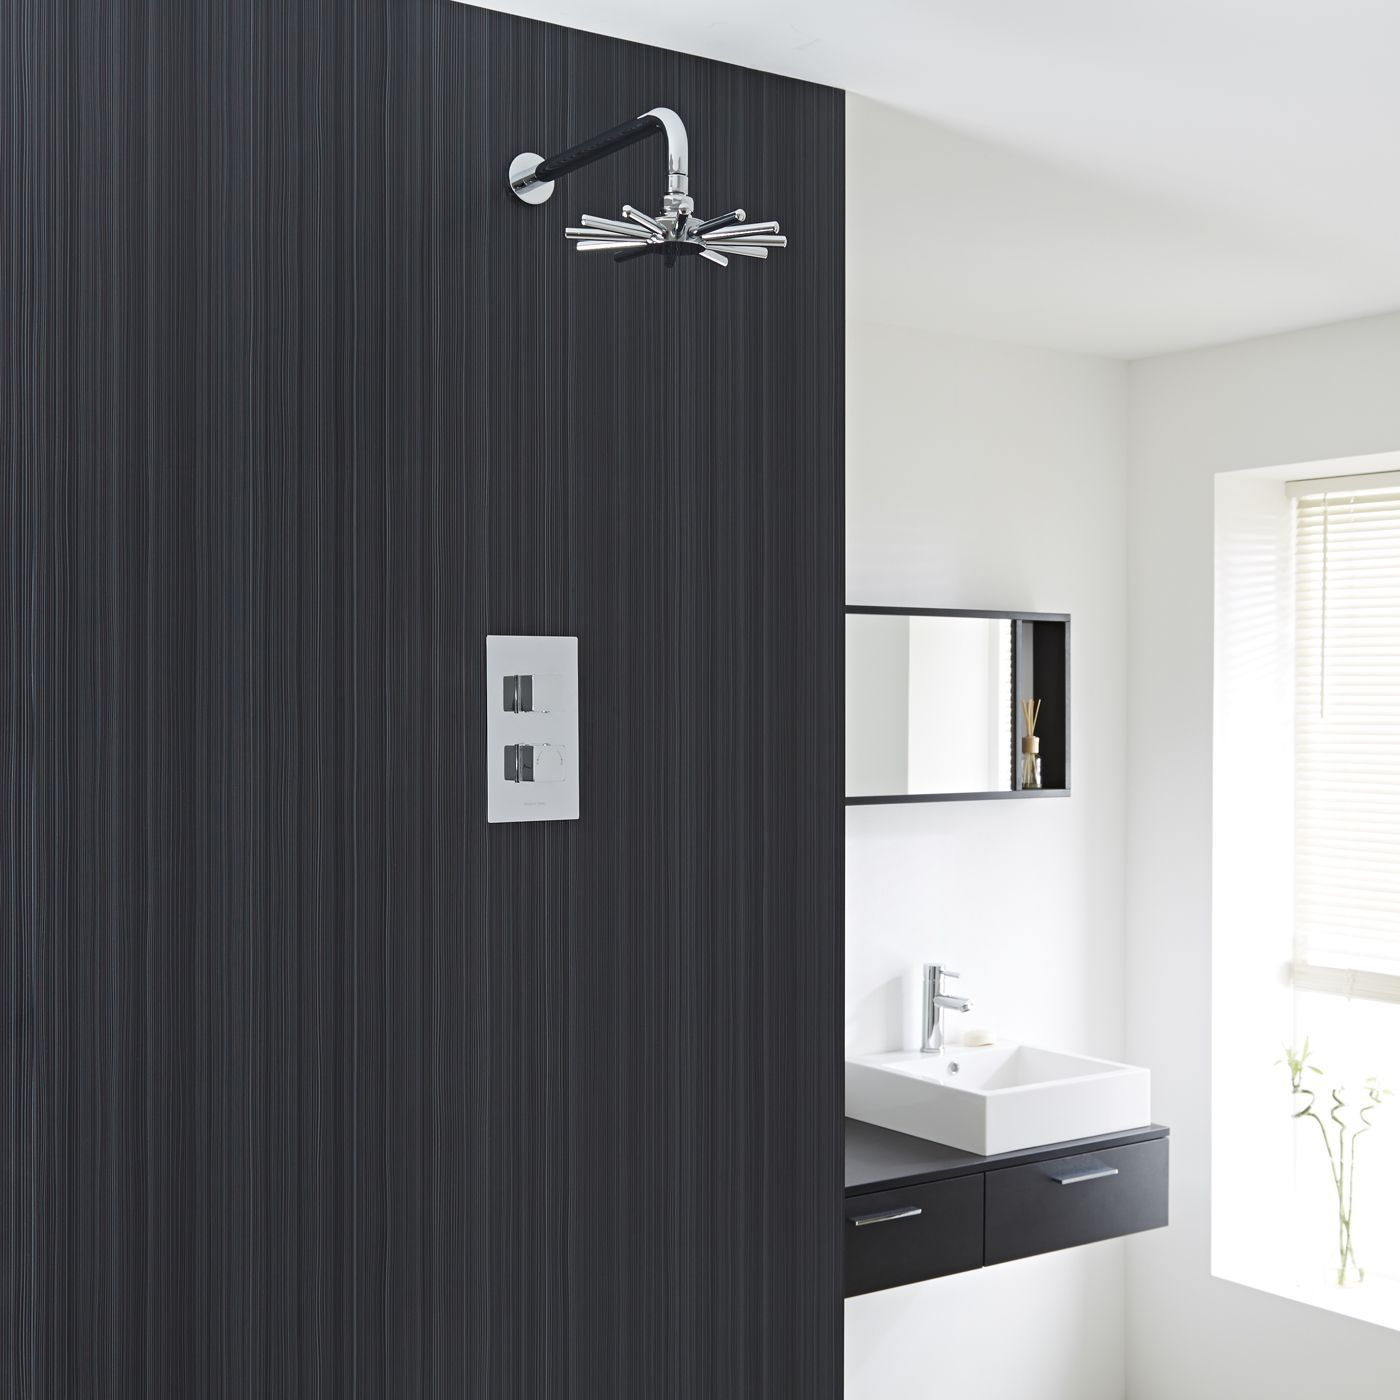 Chrome Concealed Square Thermostatic Shower Faucet valve with Cloudburst fixed head